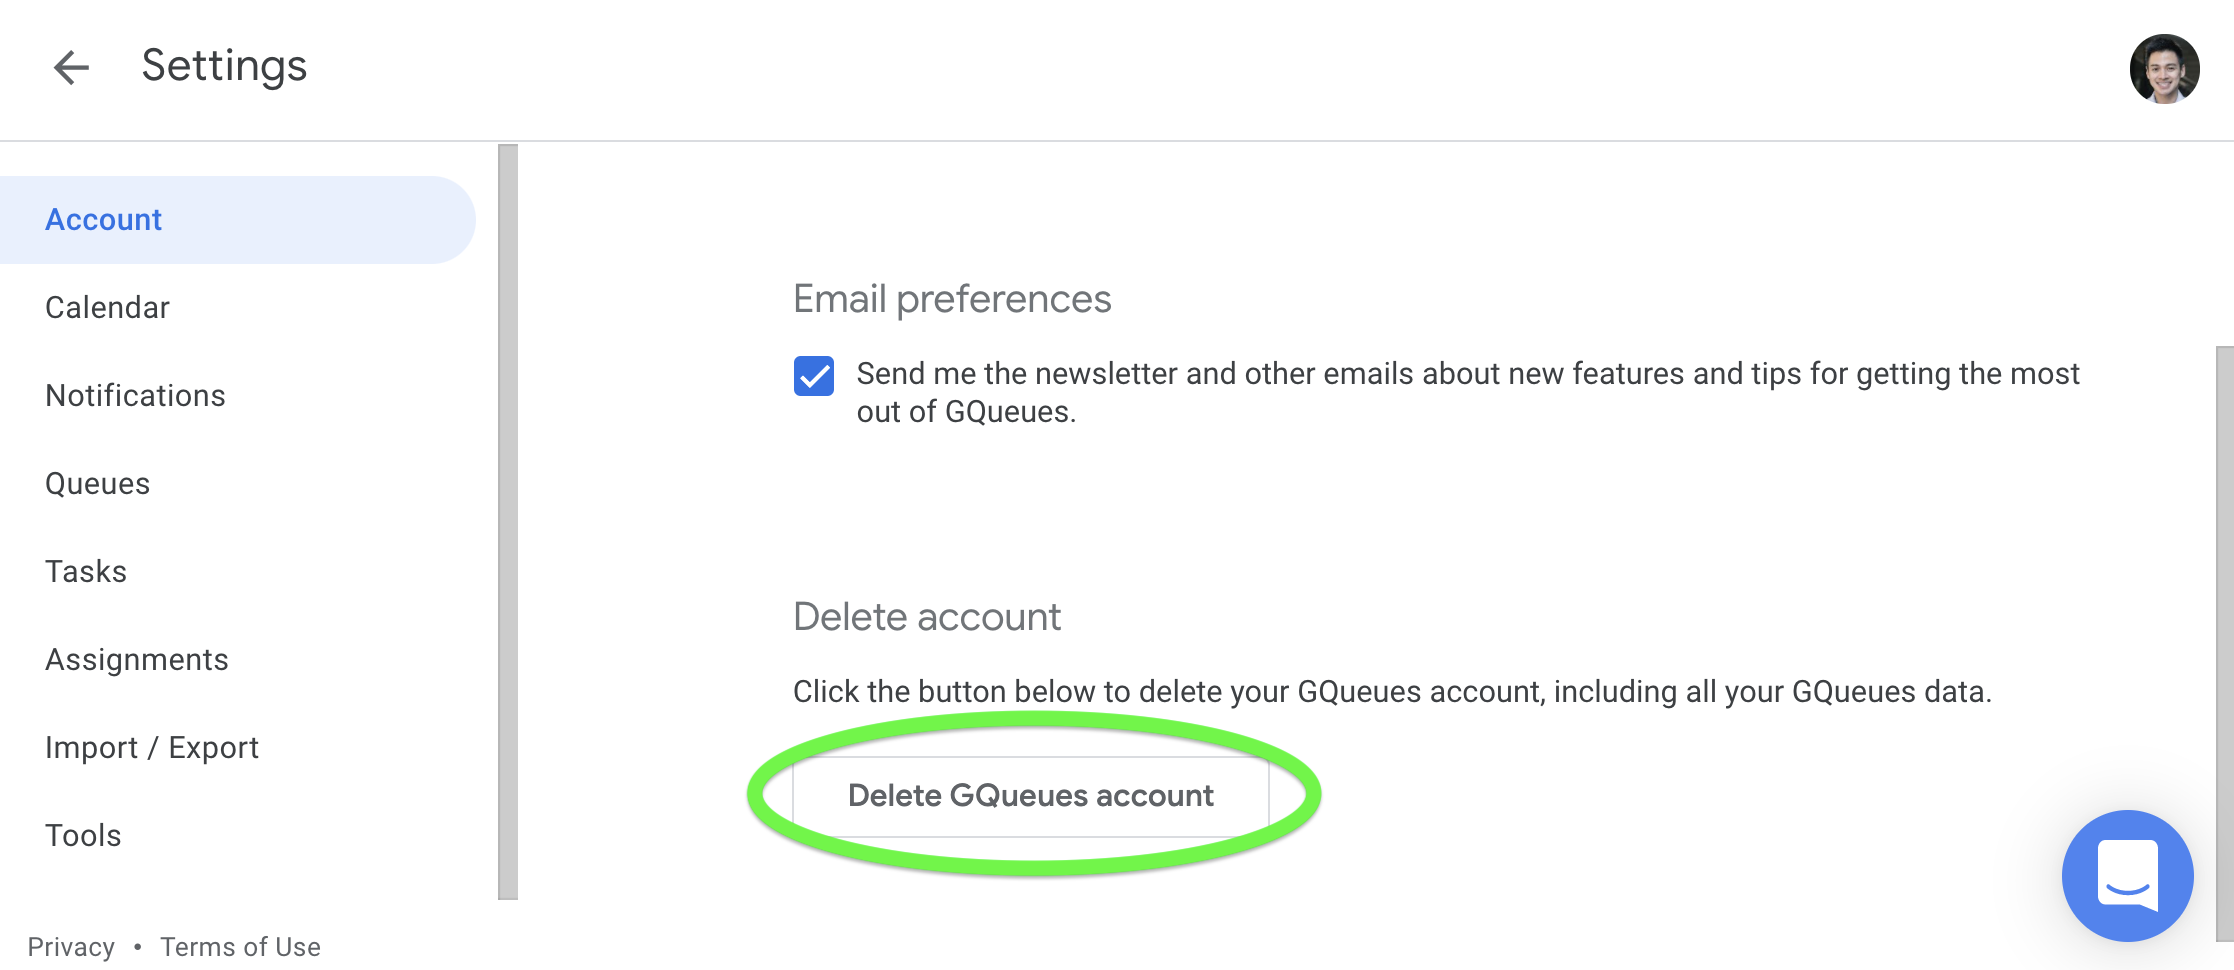 Button to Delete GQueues account circled in GQueues settings